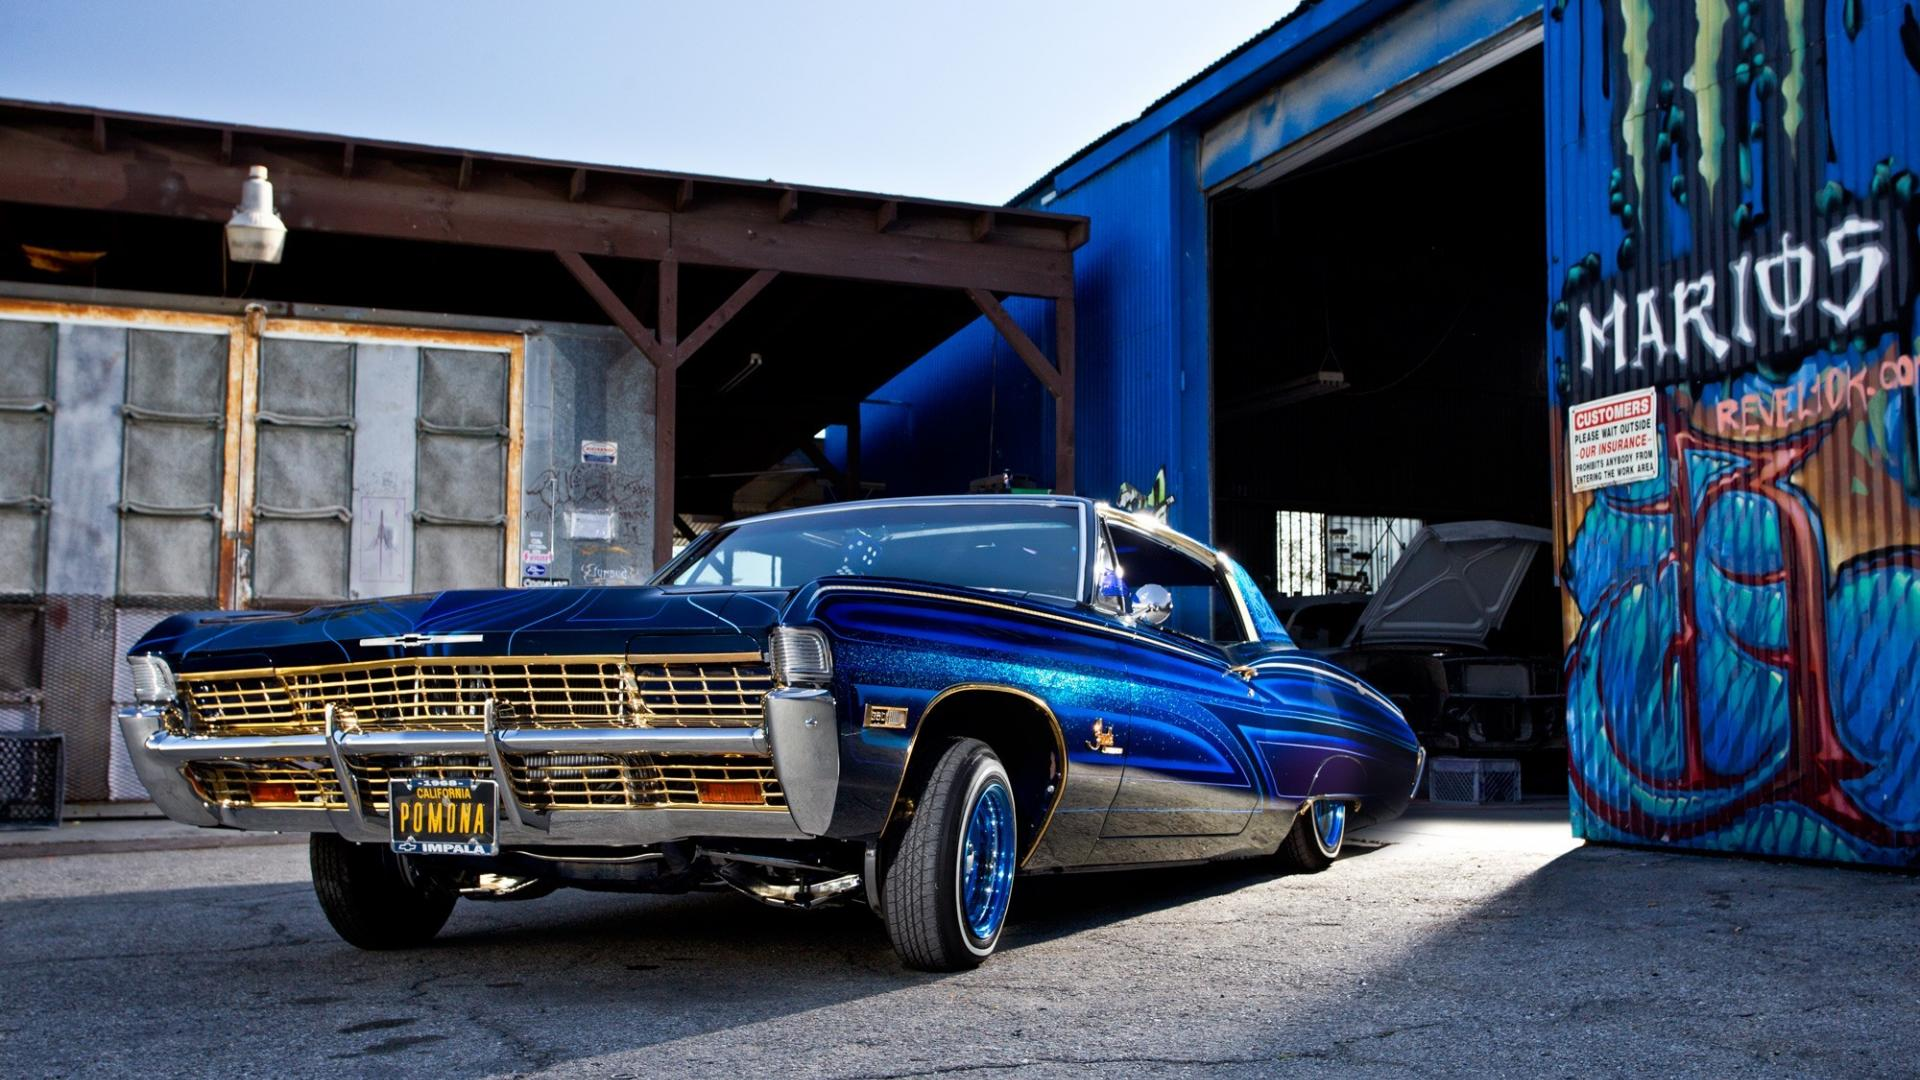 cars lowriders vehicles automobiles auto lowrider automobile custom 1920x1080